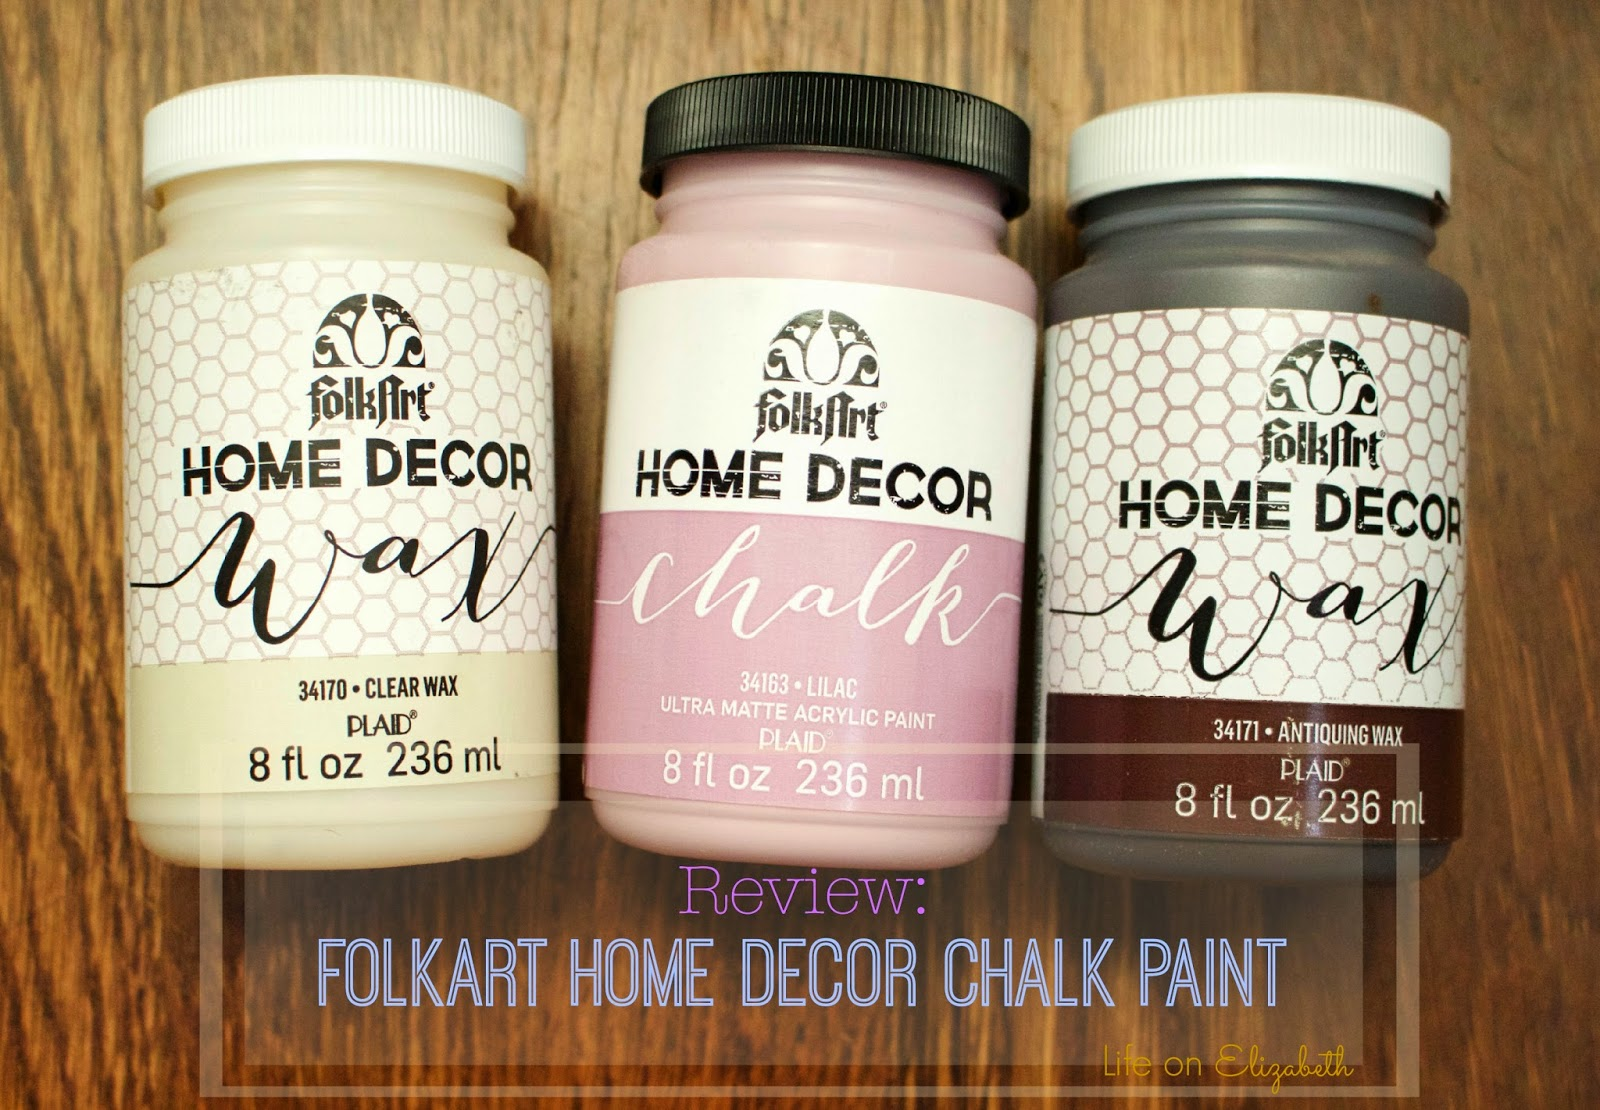 Life On Elizabeth FolkArt Home Decor Chalk Paint Review